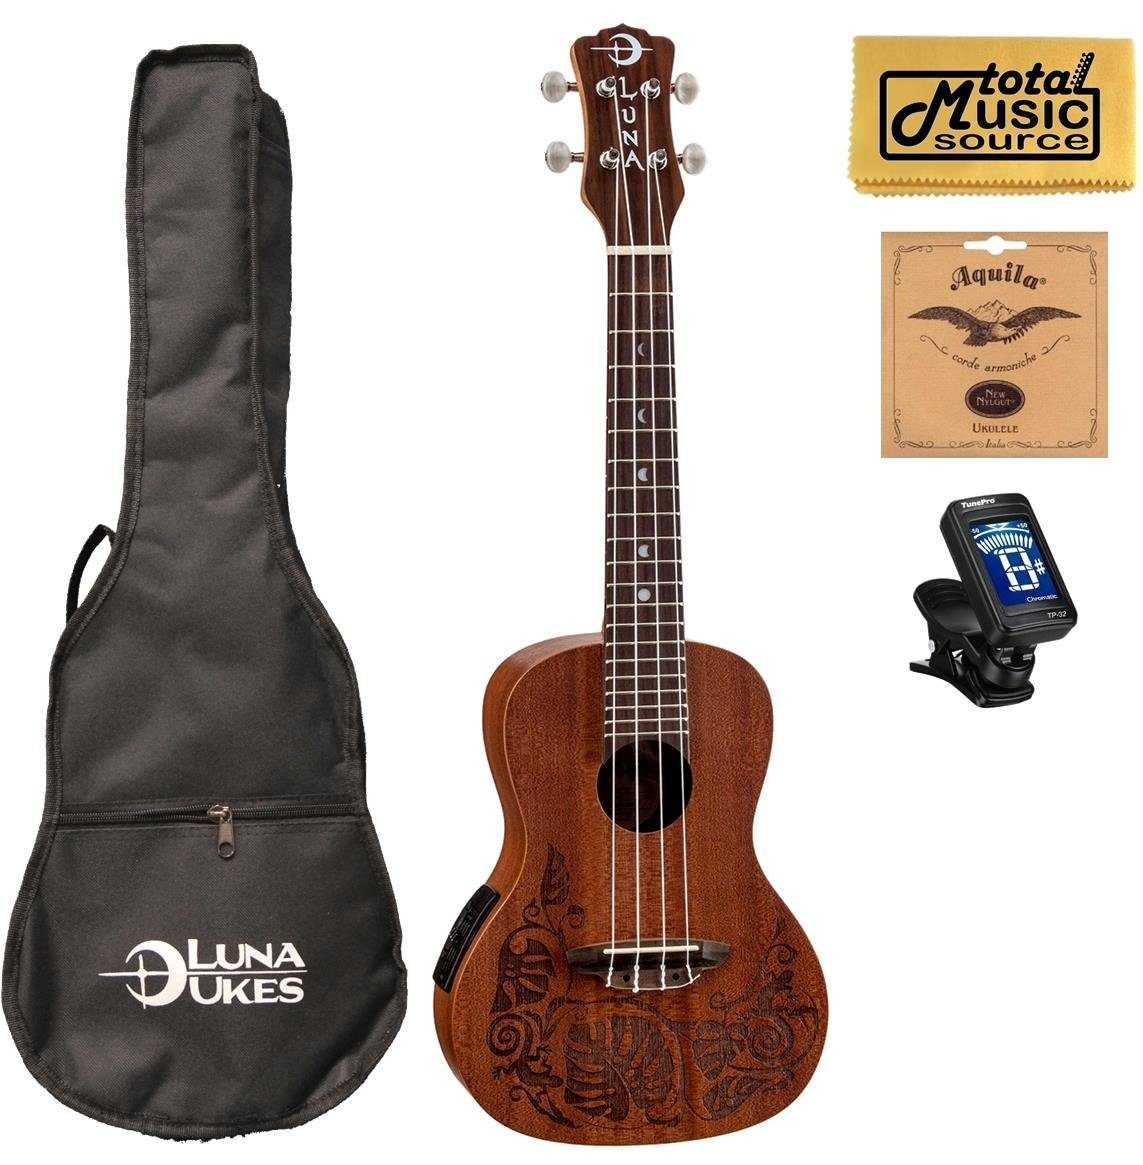 Luna Mahogany Series Mo'o Acoustic-Electric Concert Ukulele w/ Gigbag,Tuner,Strings & PC